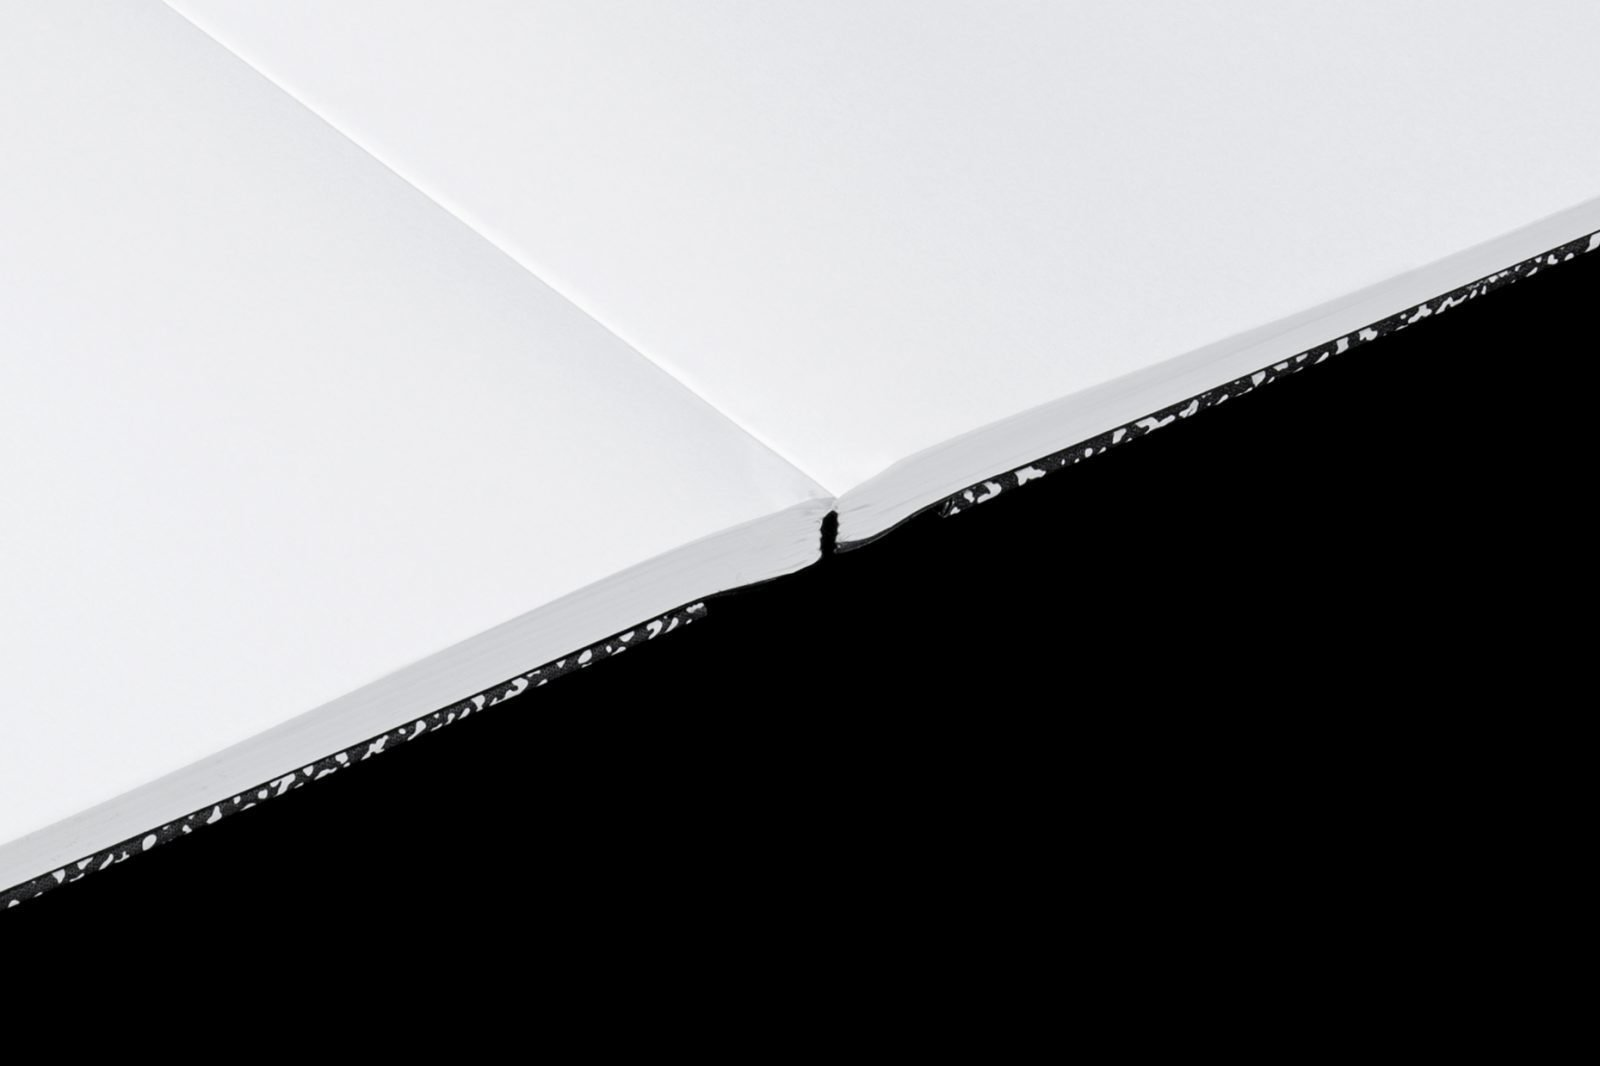 120 gsm ultra white, smooth, uncoated interior paper 155 whiteness (CIE), 96% opacity, 122 brightness (ISO 2470/D65 %), 150 Roughness (Bendtsen, ml/min)  Photo 2 of 6 in Comp Brings Composition Notebooks into the 21st Century